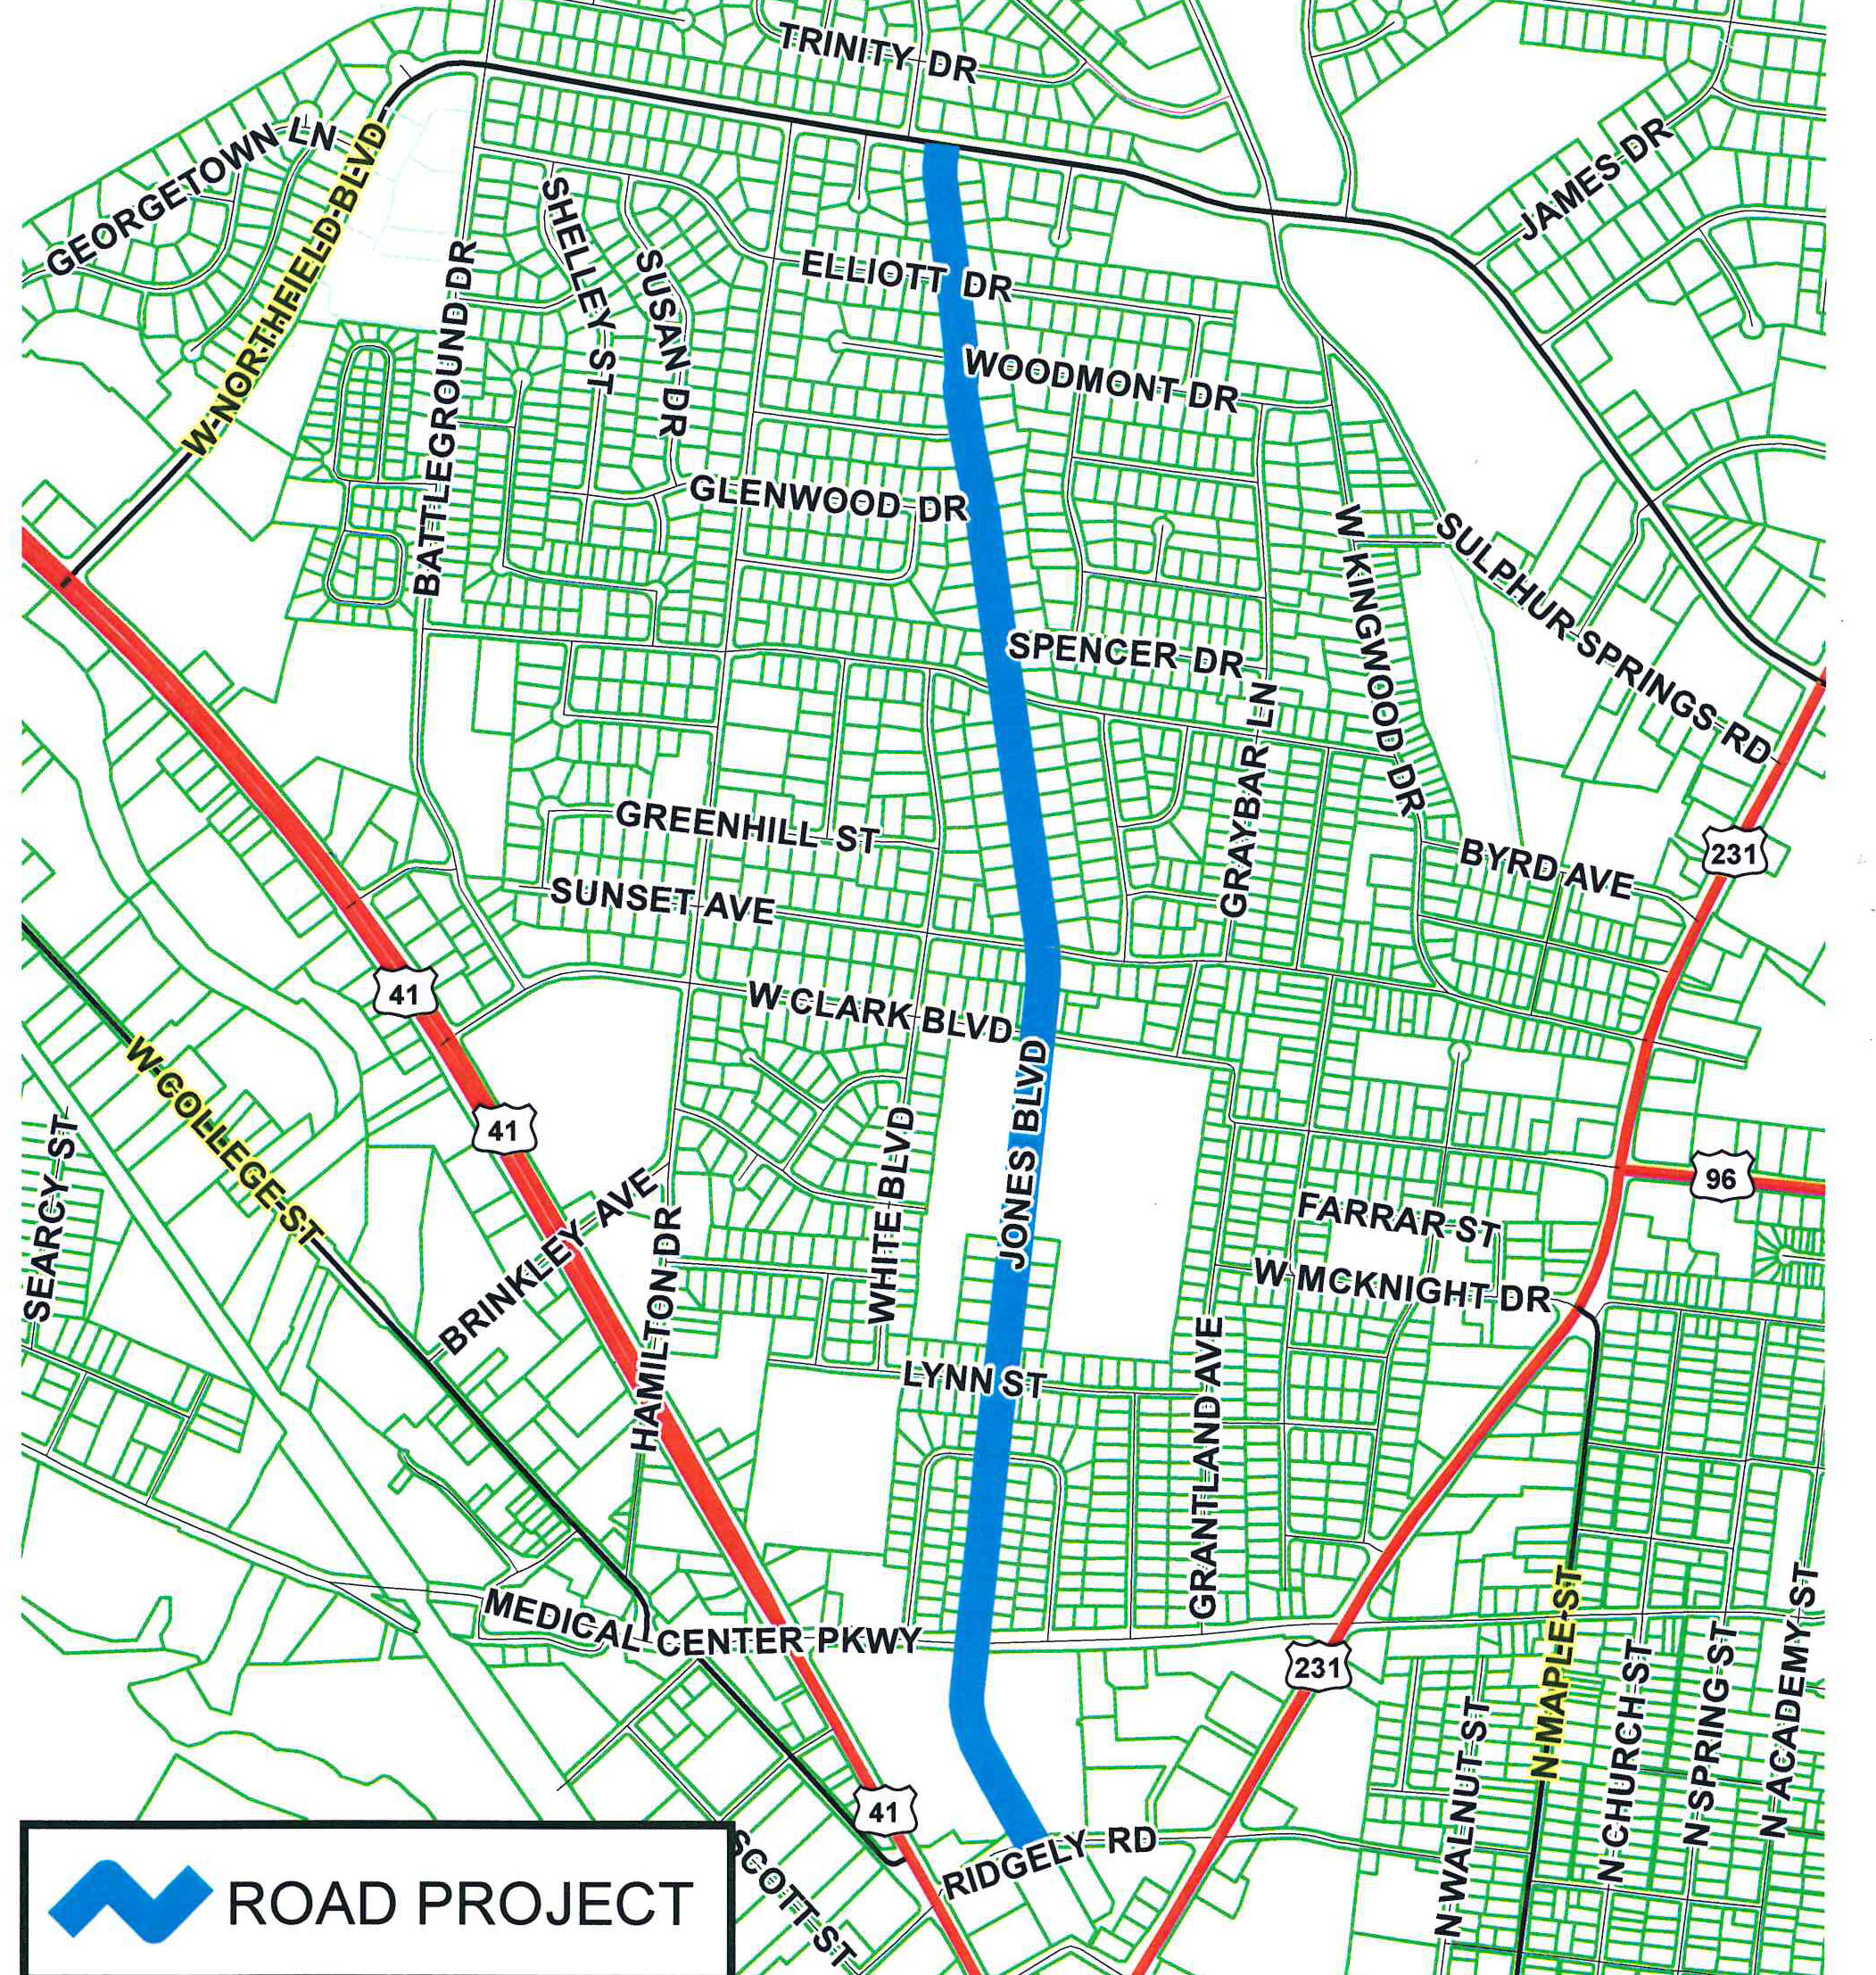 Design Public Meeting scheduled on Jones Blvd. Improvement Project Nov. 1